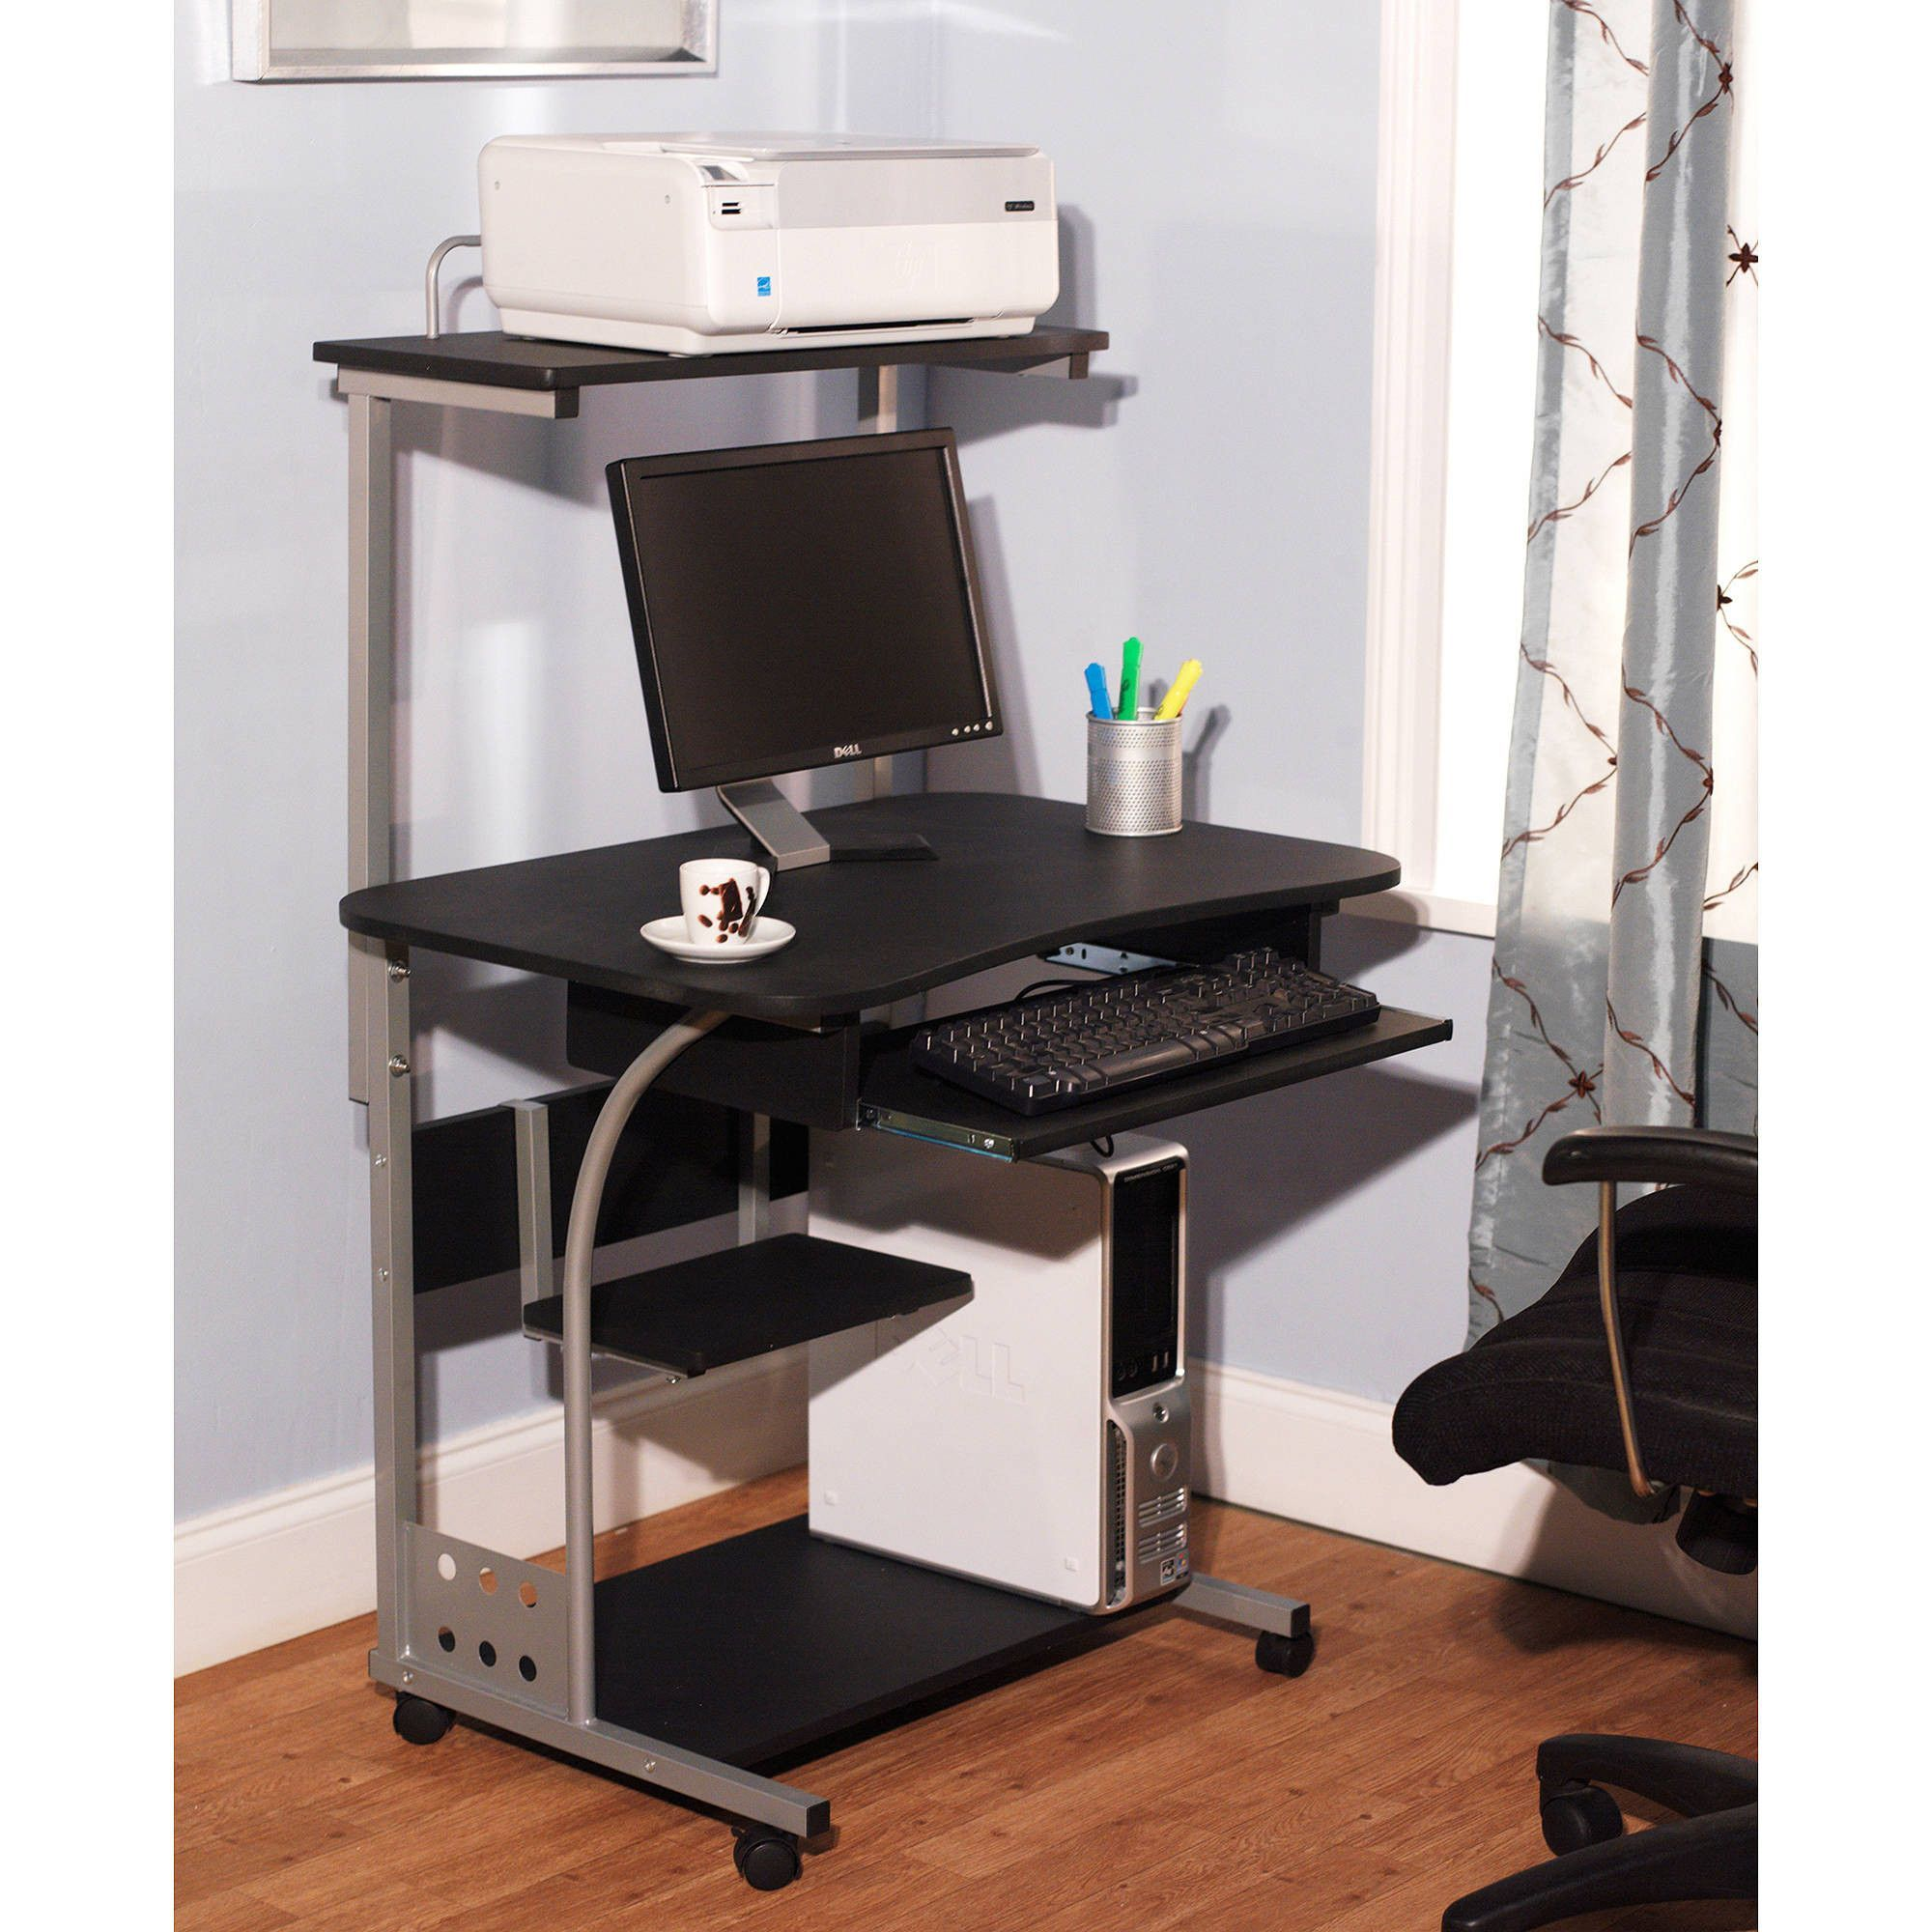 Small pact Mobile Portable puter Tower with Shelf Desk with